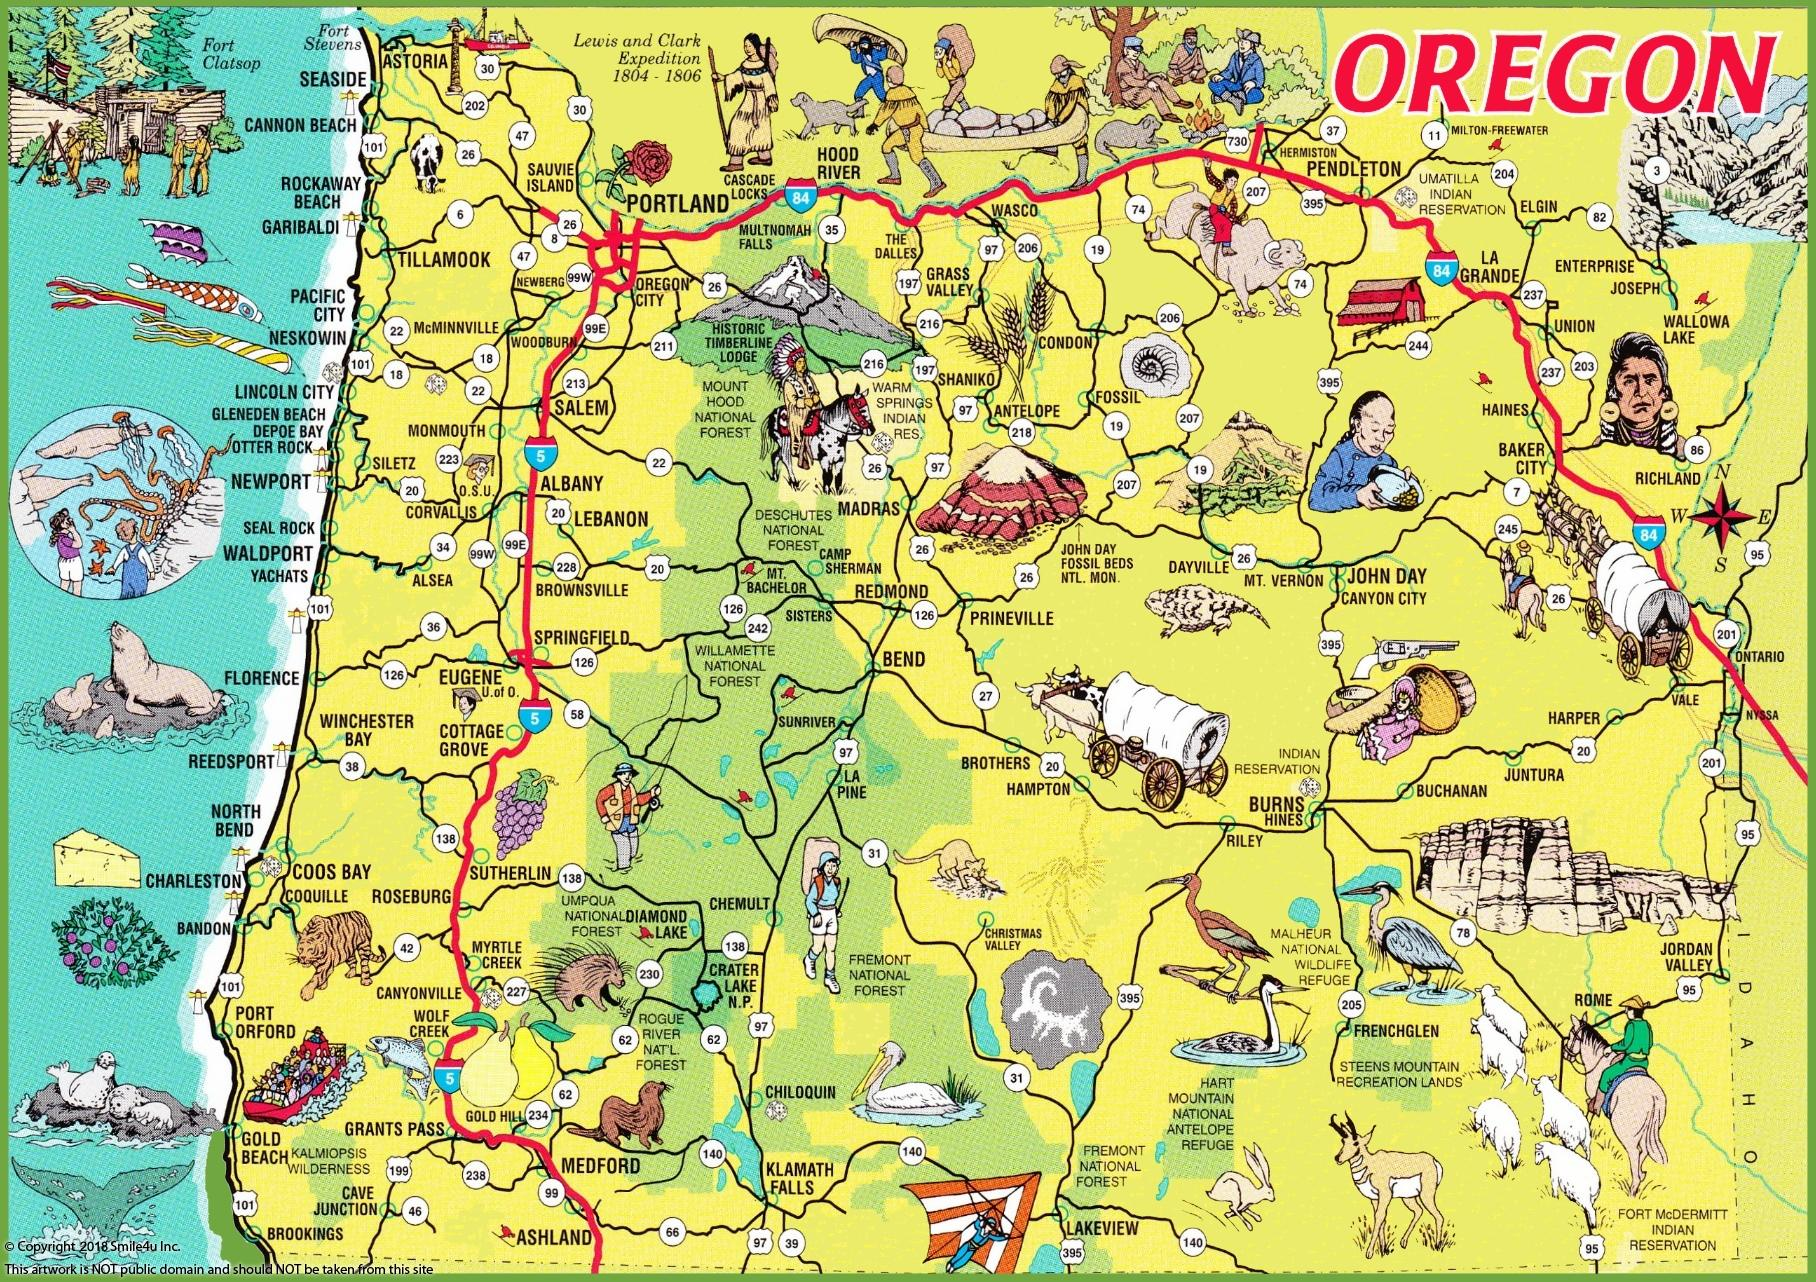 395459_watermarked_pictorial-travel-map-of-oregon.jpg